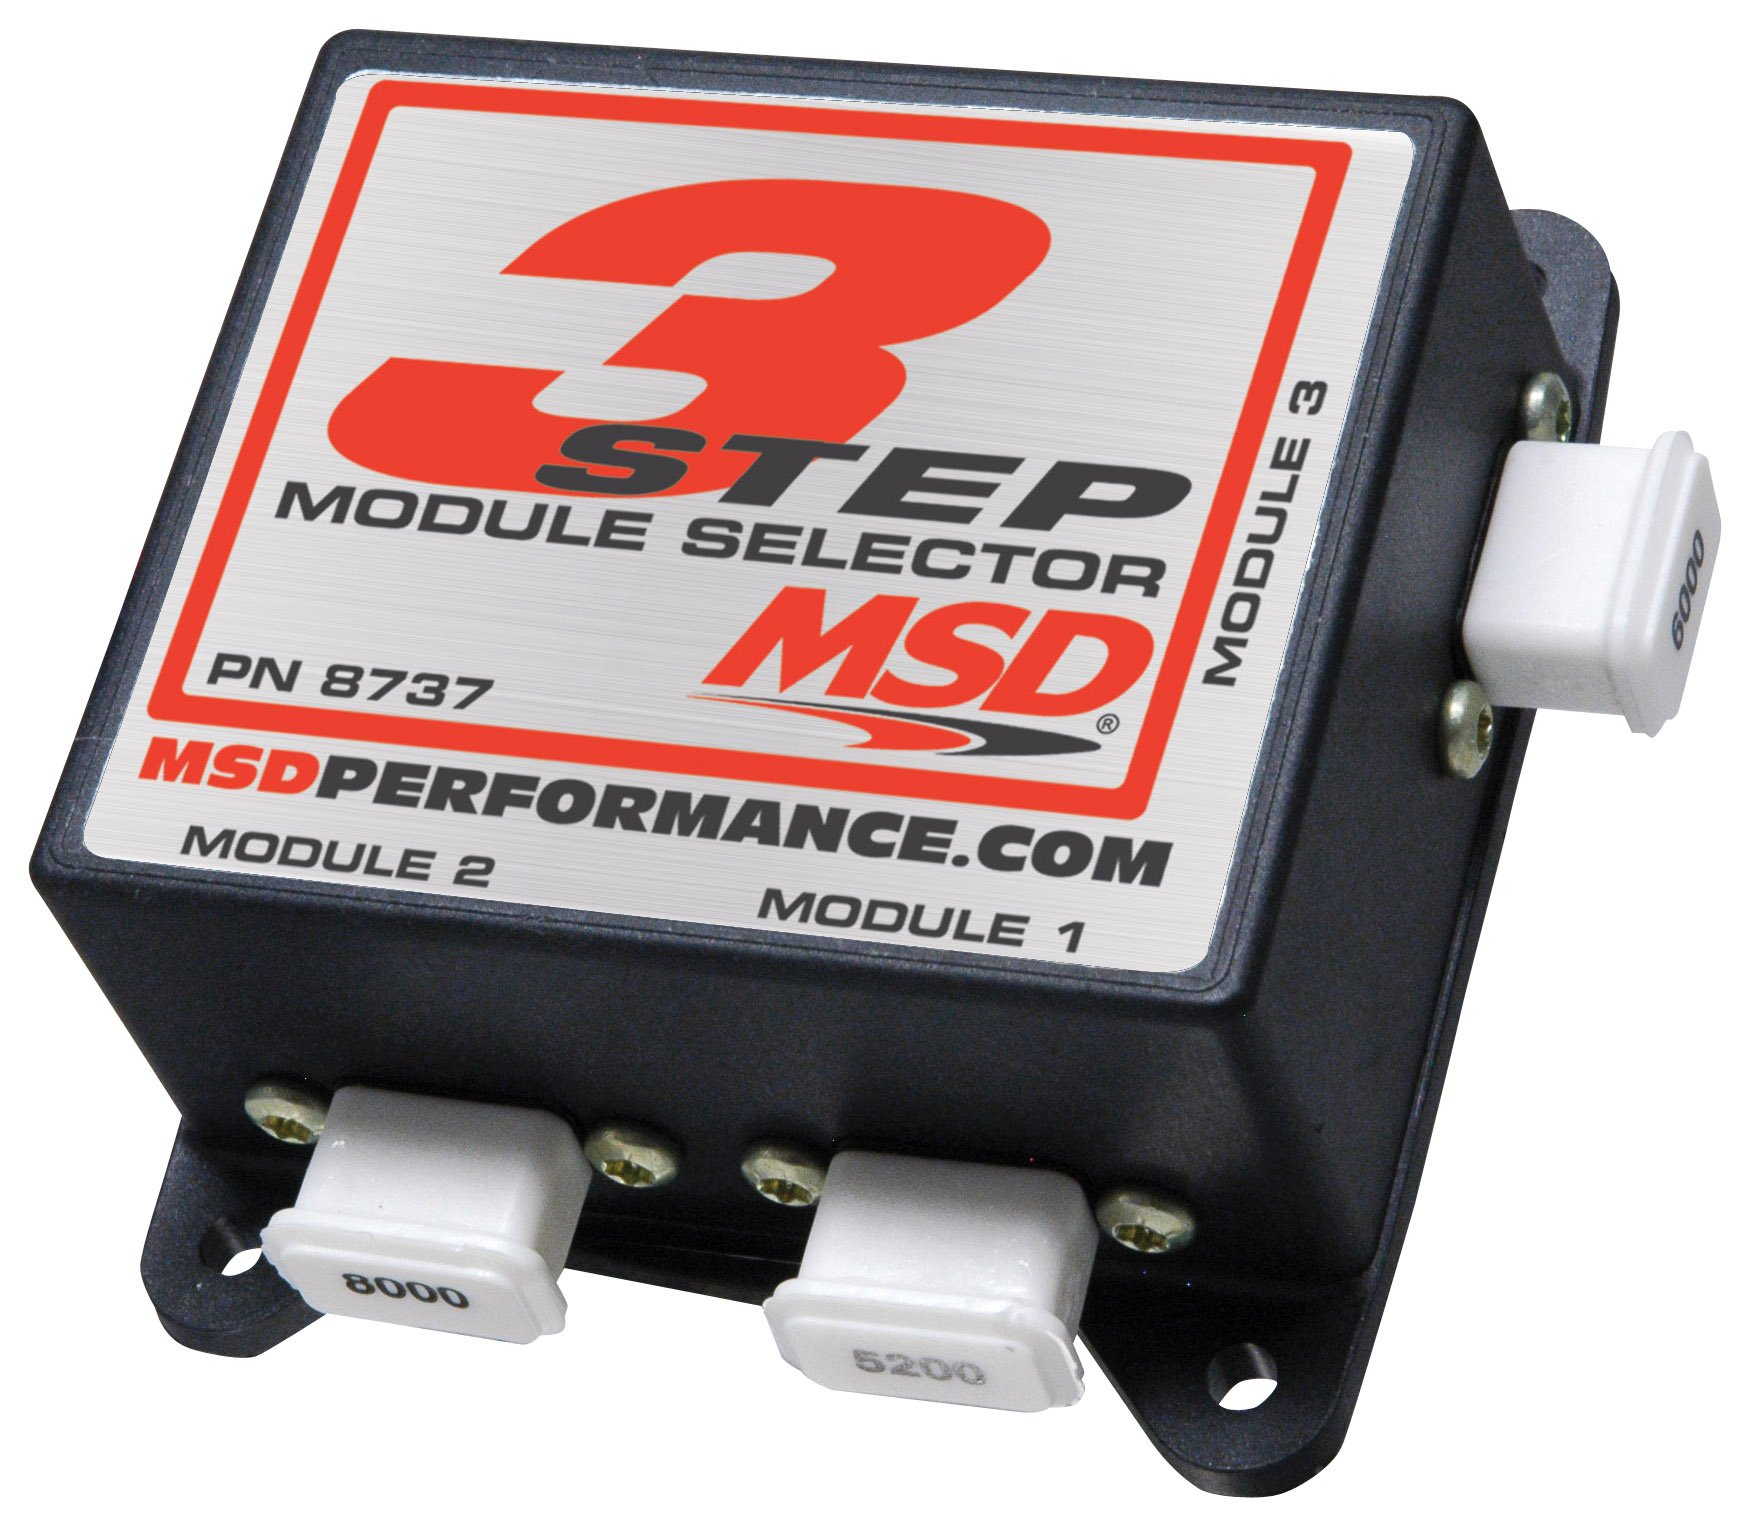 msd three step module selector msd performance products 8737 three step module selector image